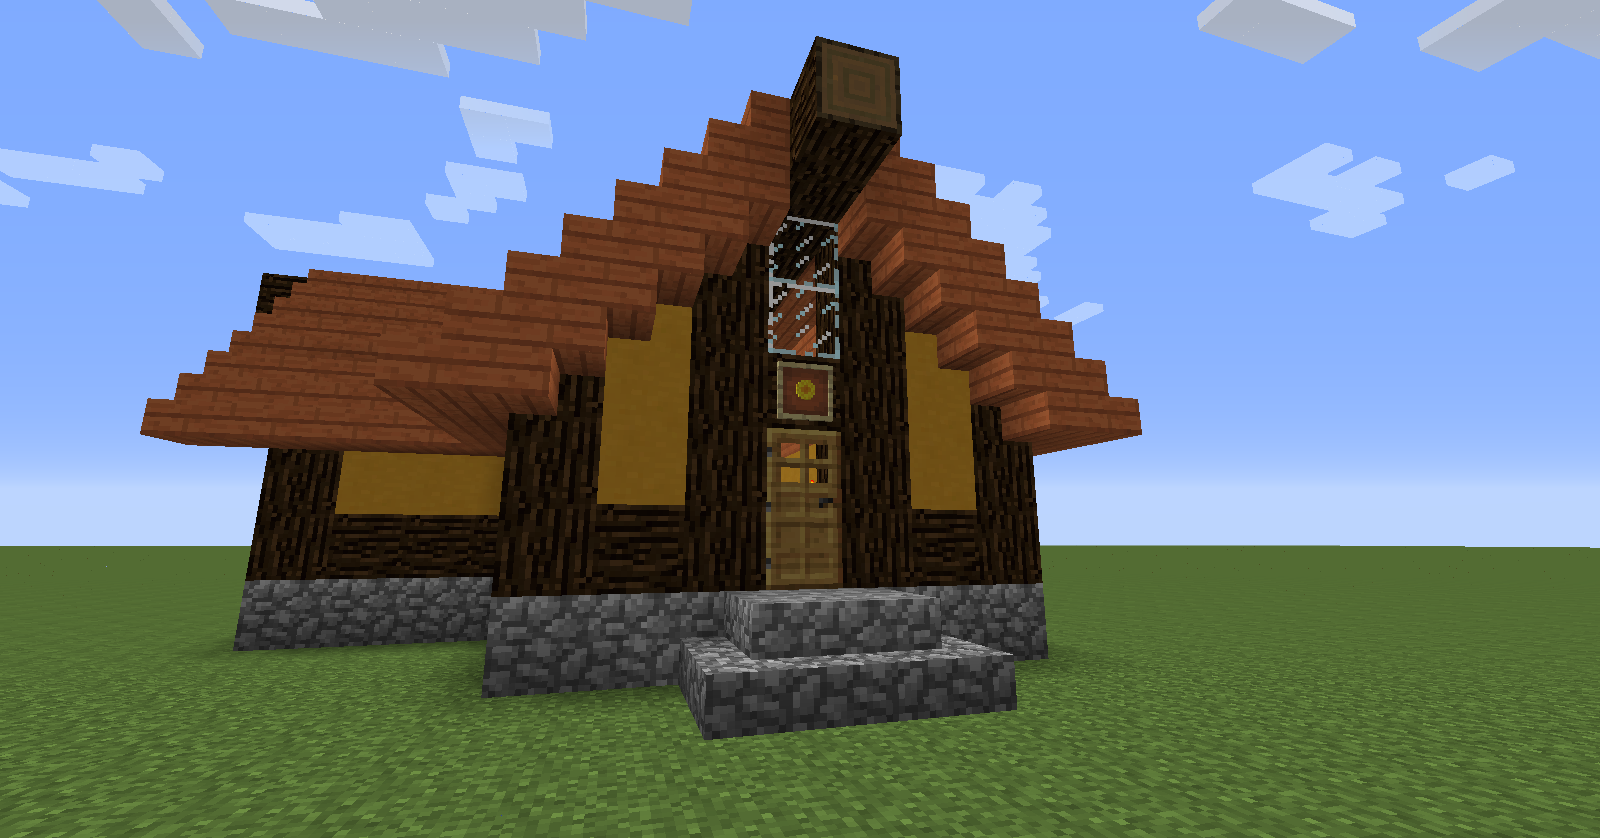 Himawari house minecraft build tutorial bc gb for How to build my house